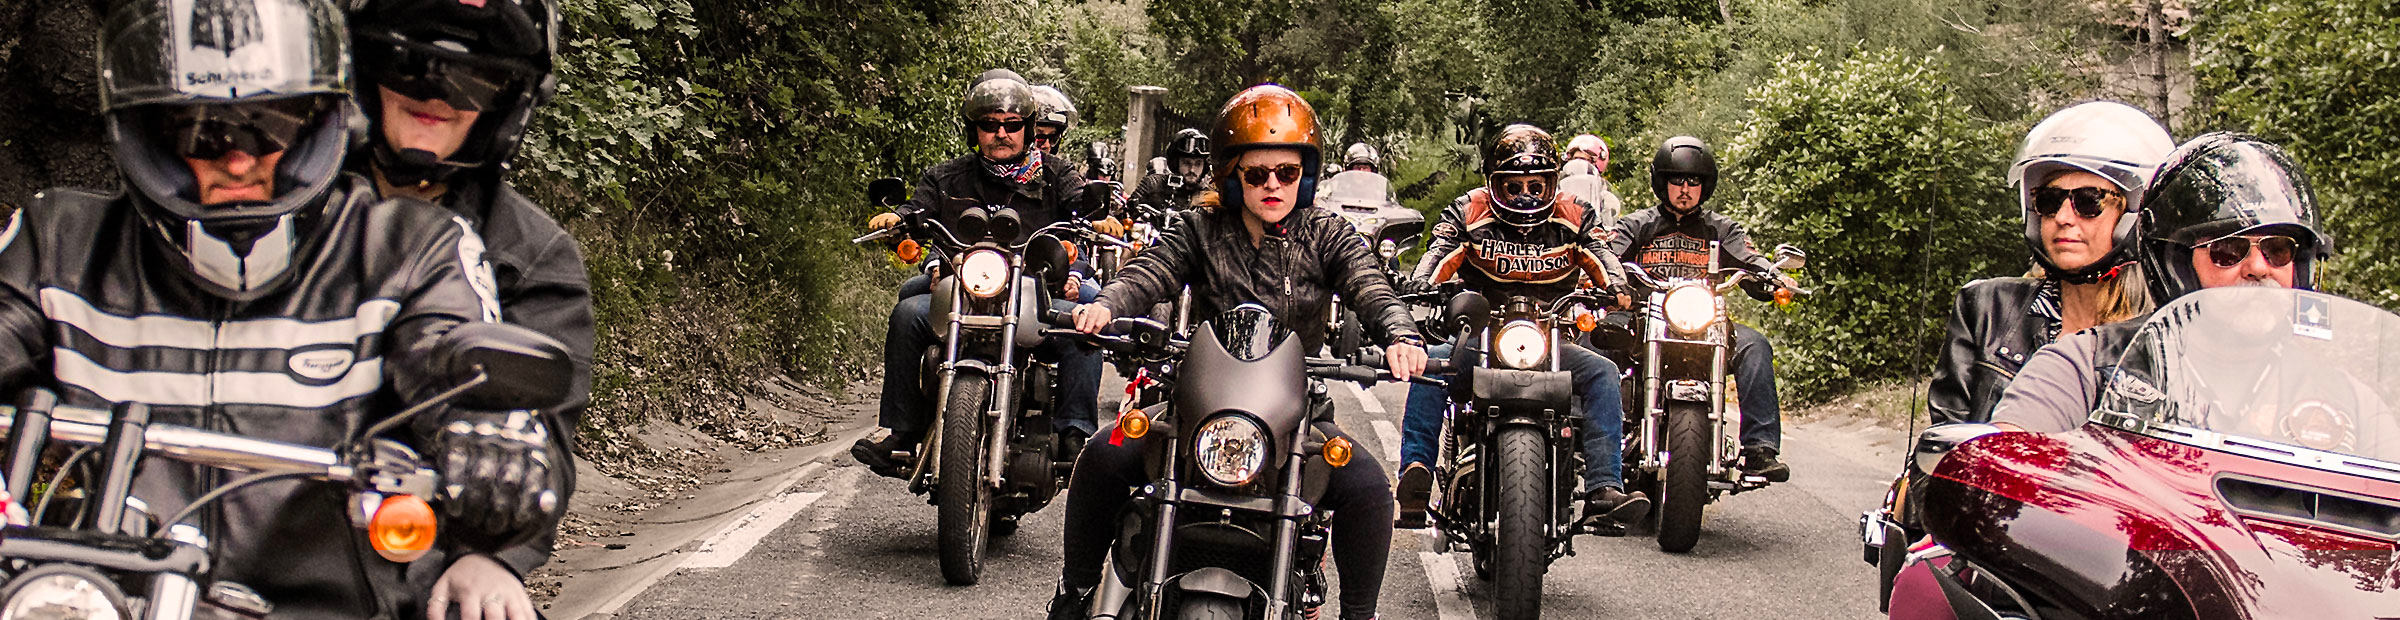 Harley-Davidson<sup>®</sup> Events